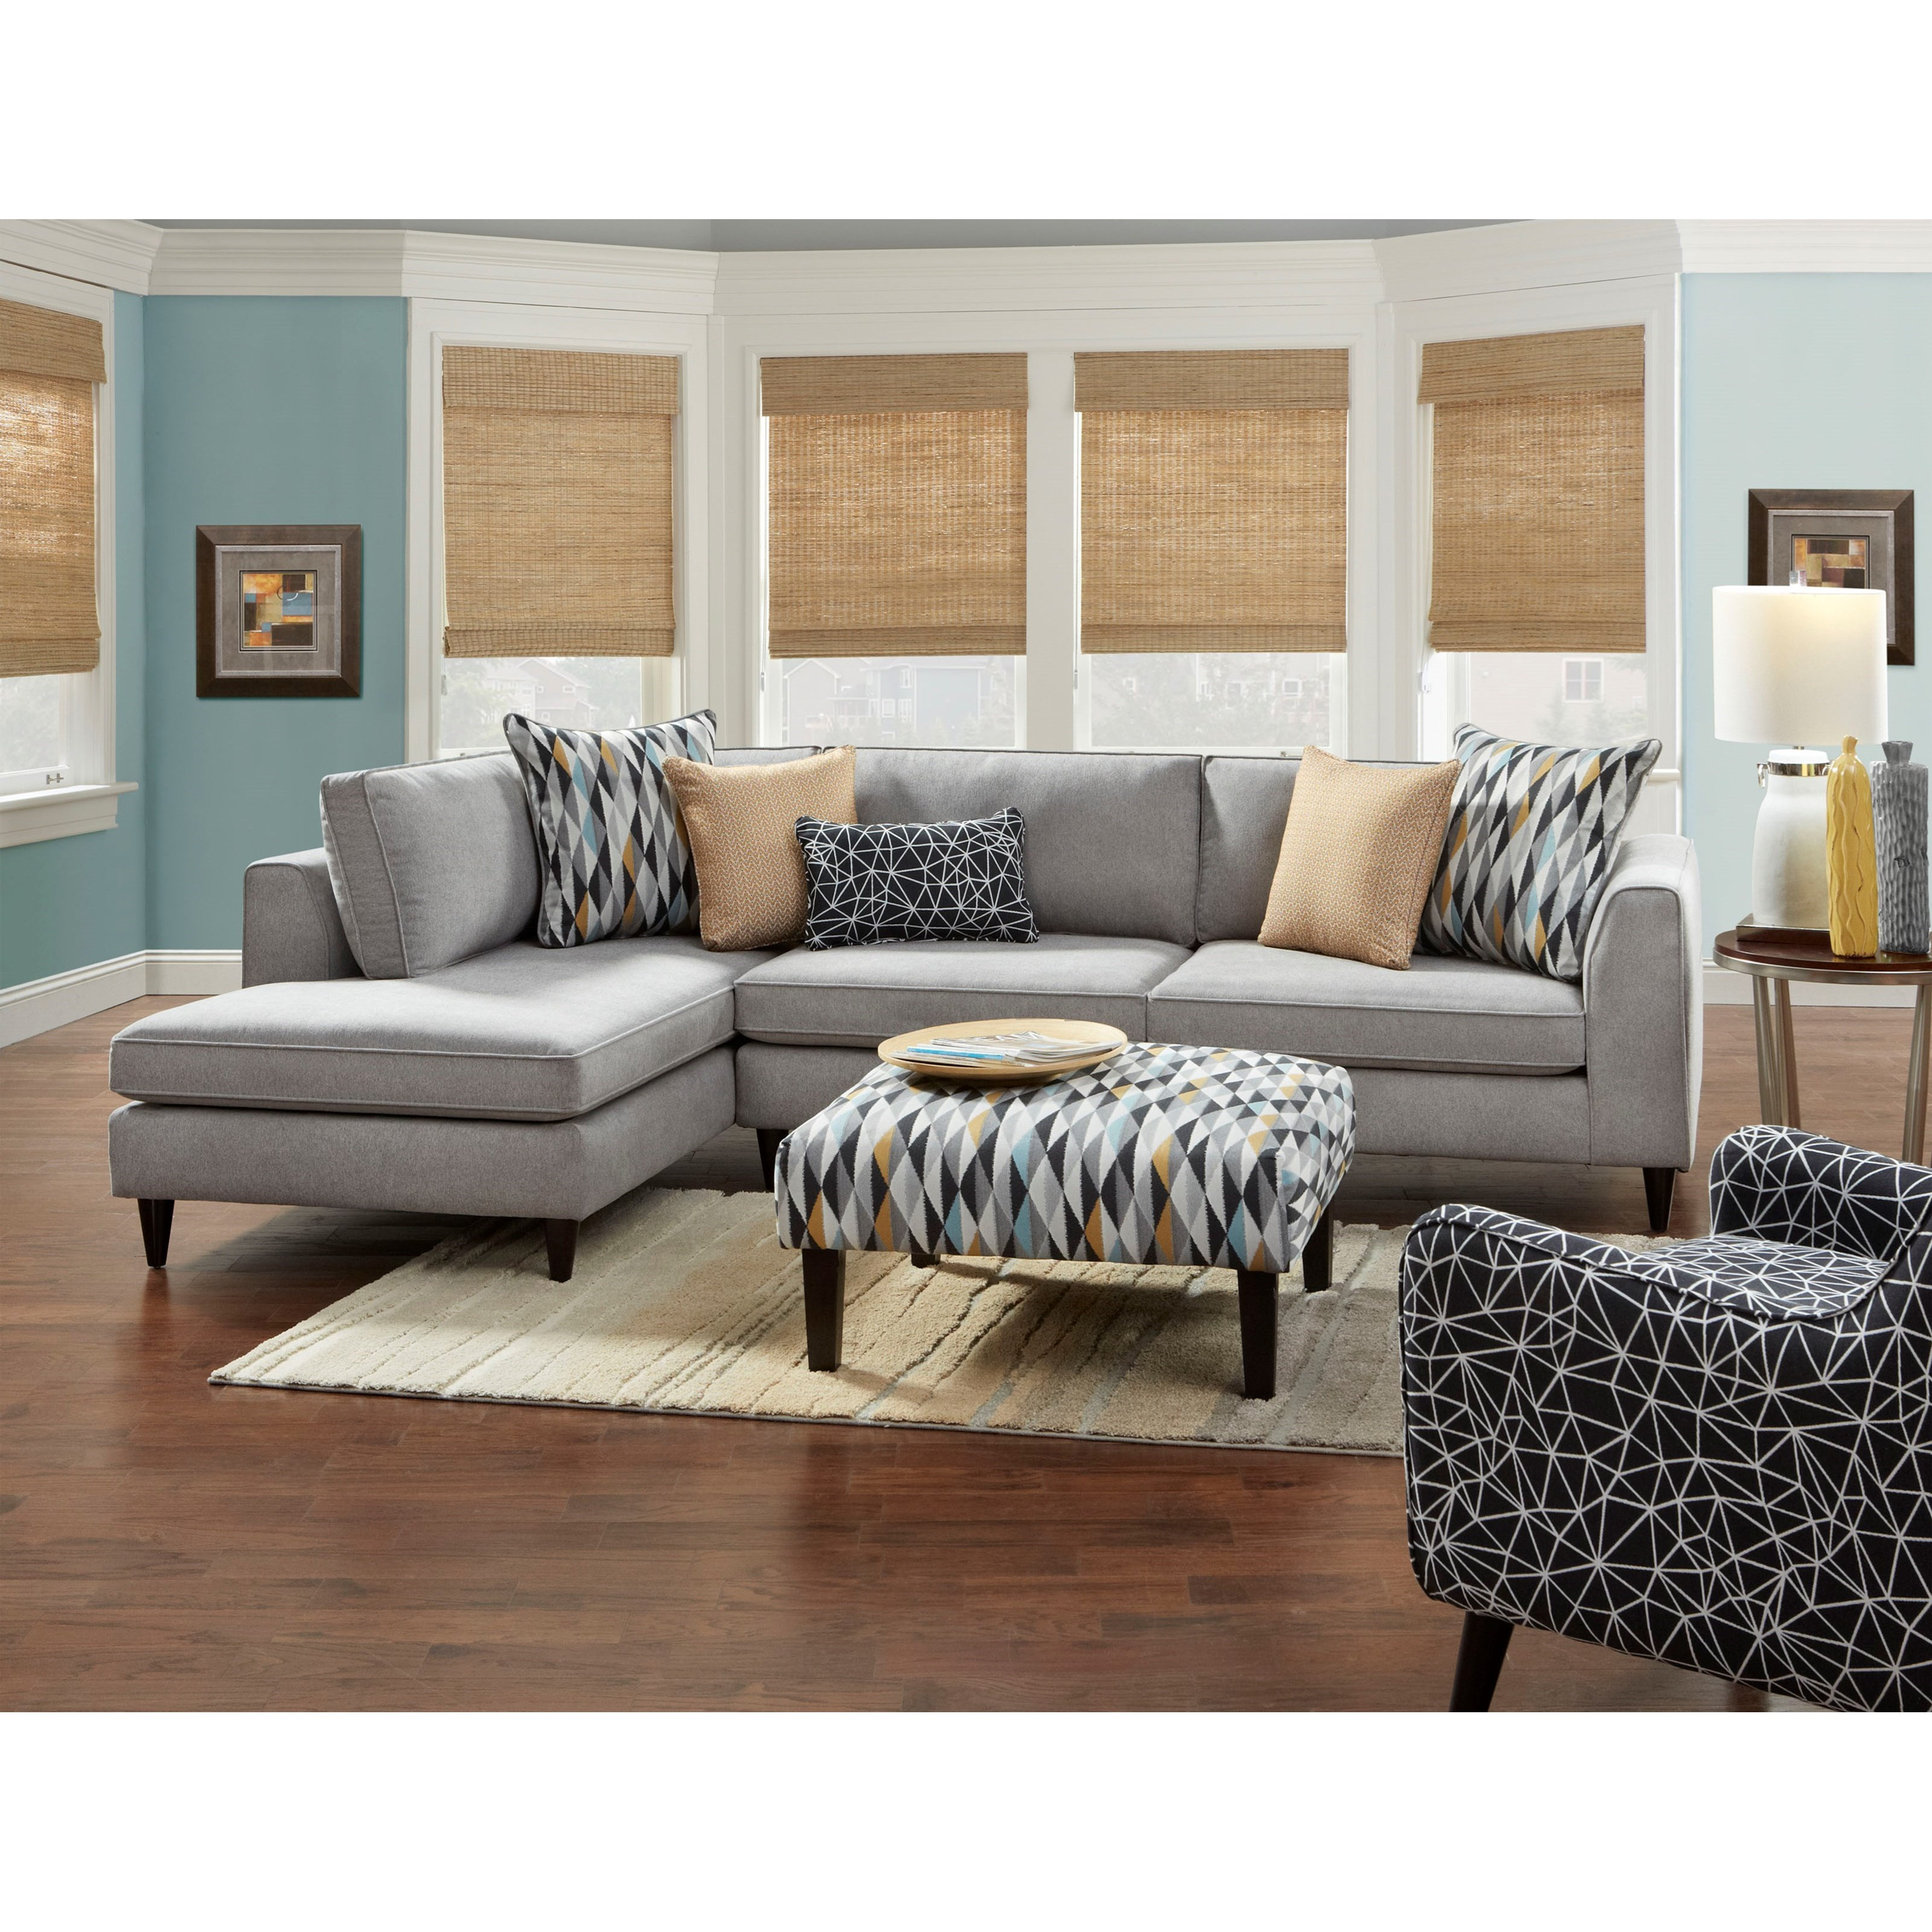 Fusion Furniture 3400 Stationary Living Room Group